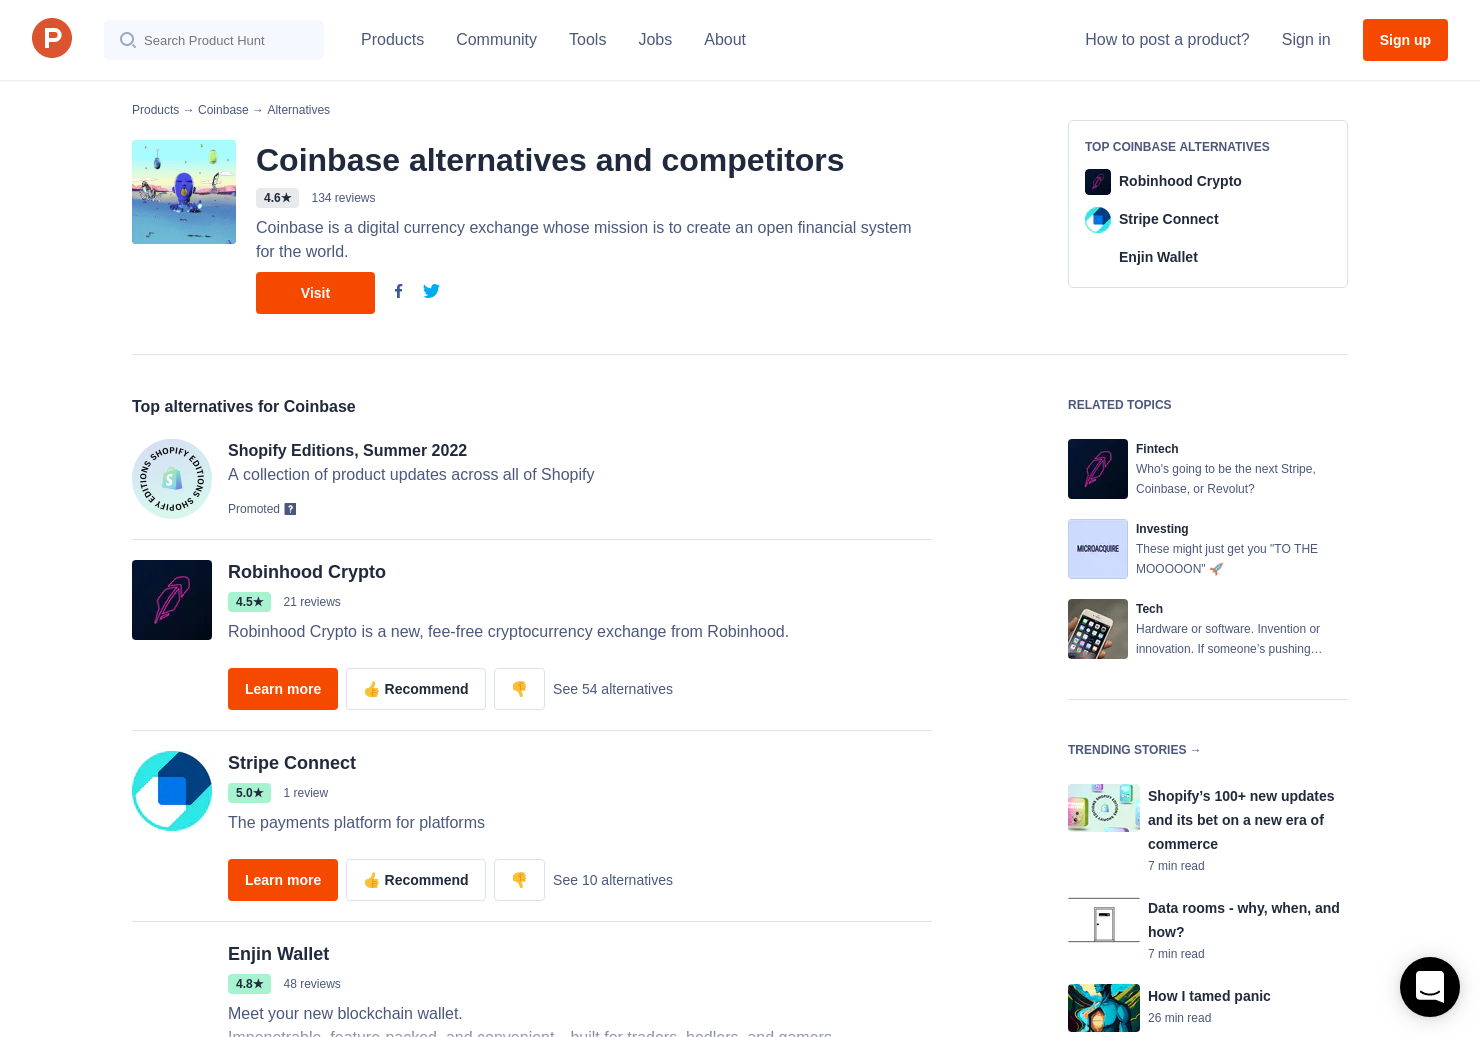 26 Alternatives to Coinbase | Product Hunt